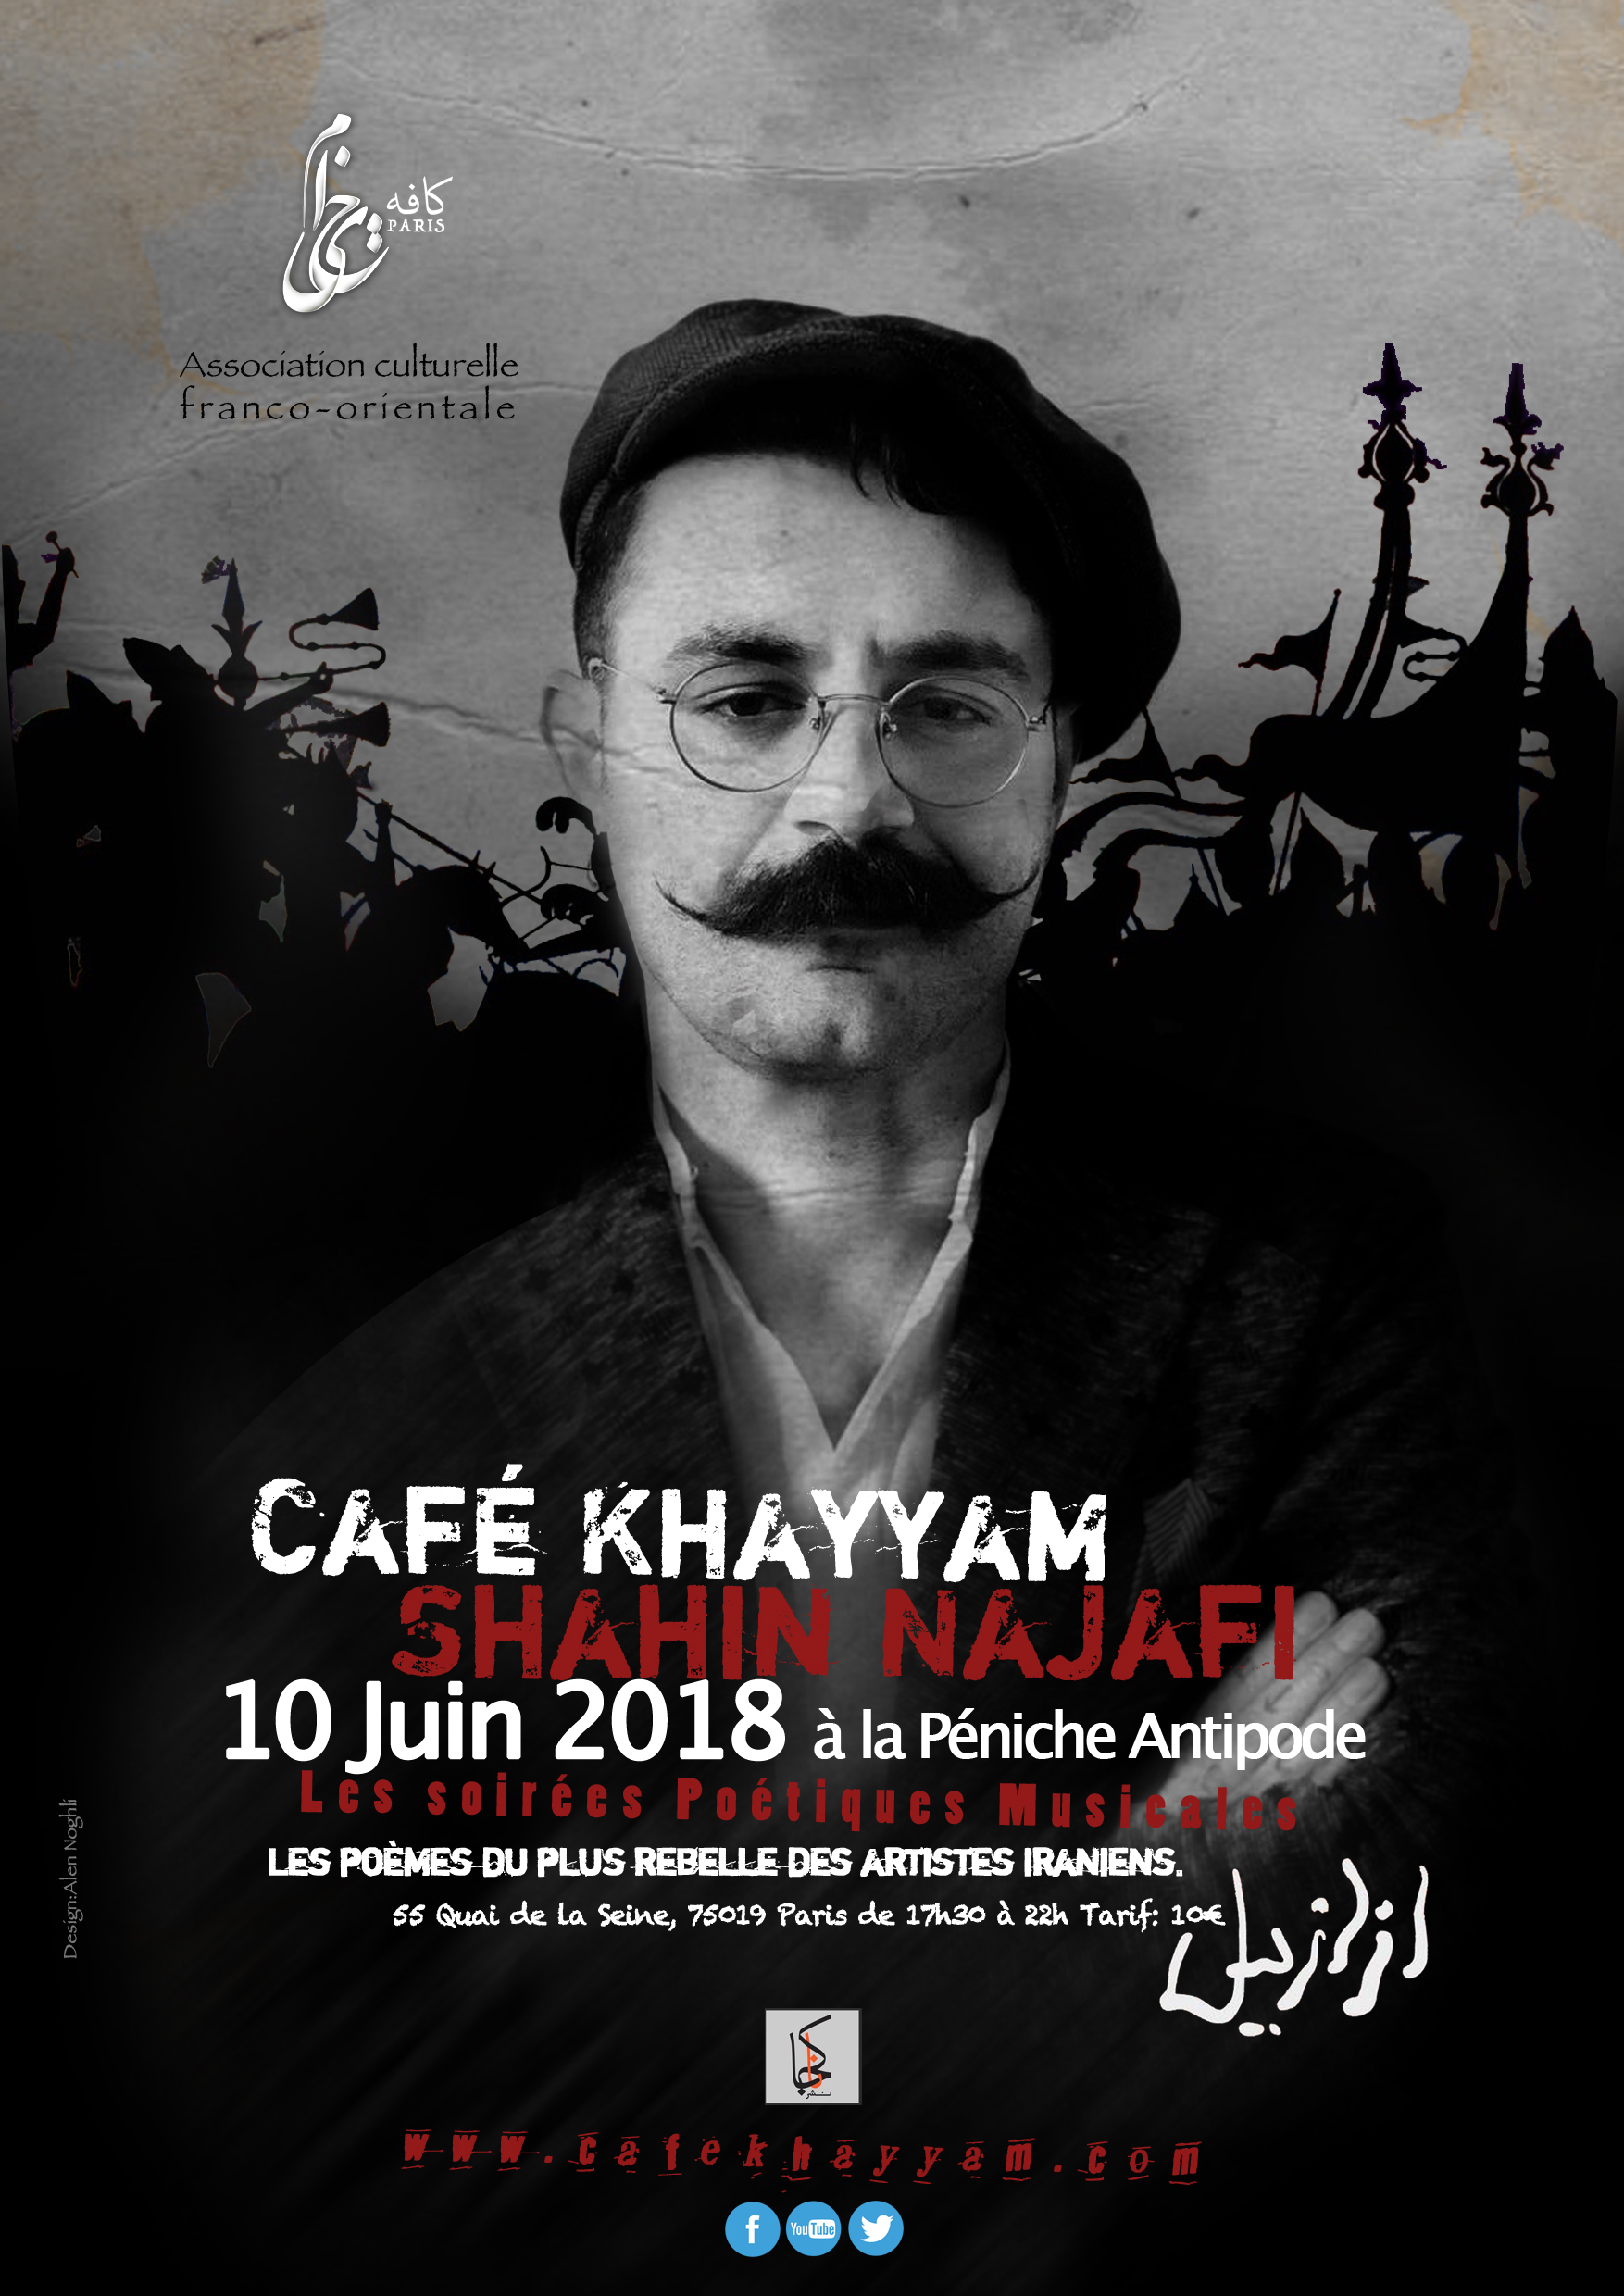 shahin  final 2018 cafe khayyam